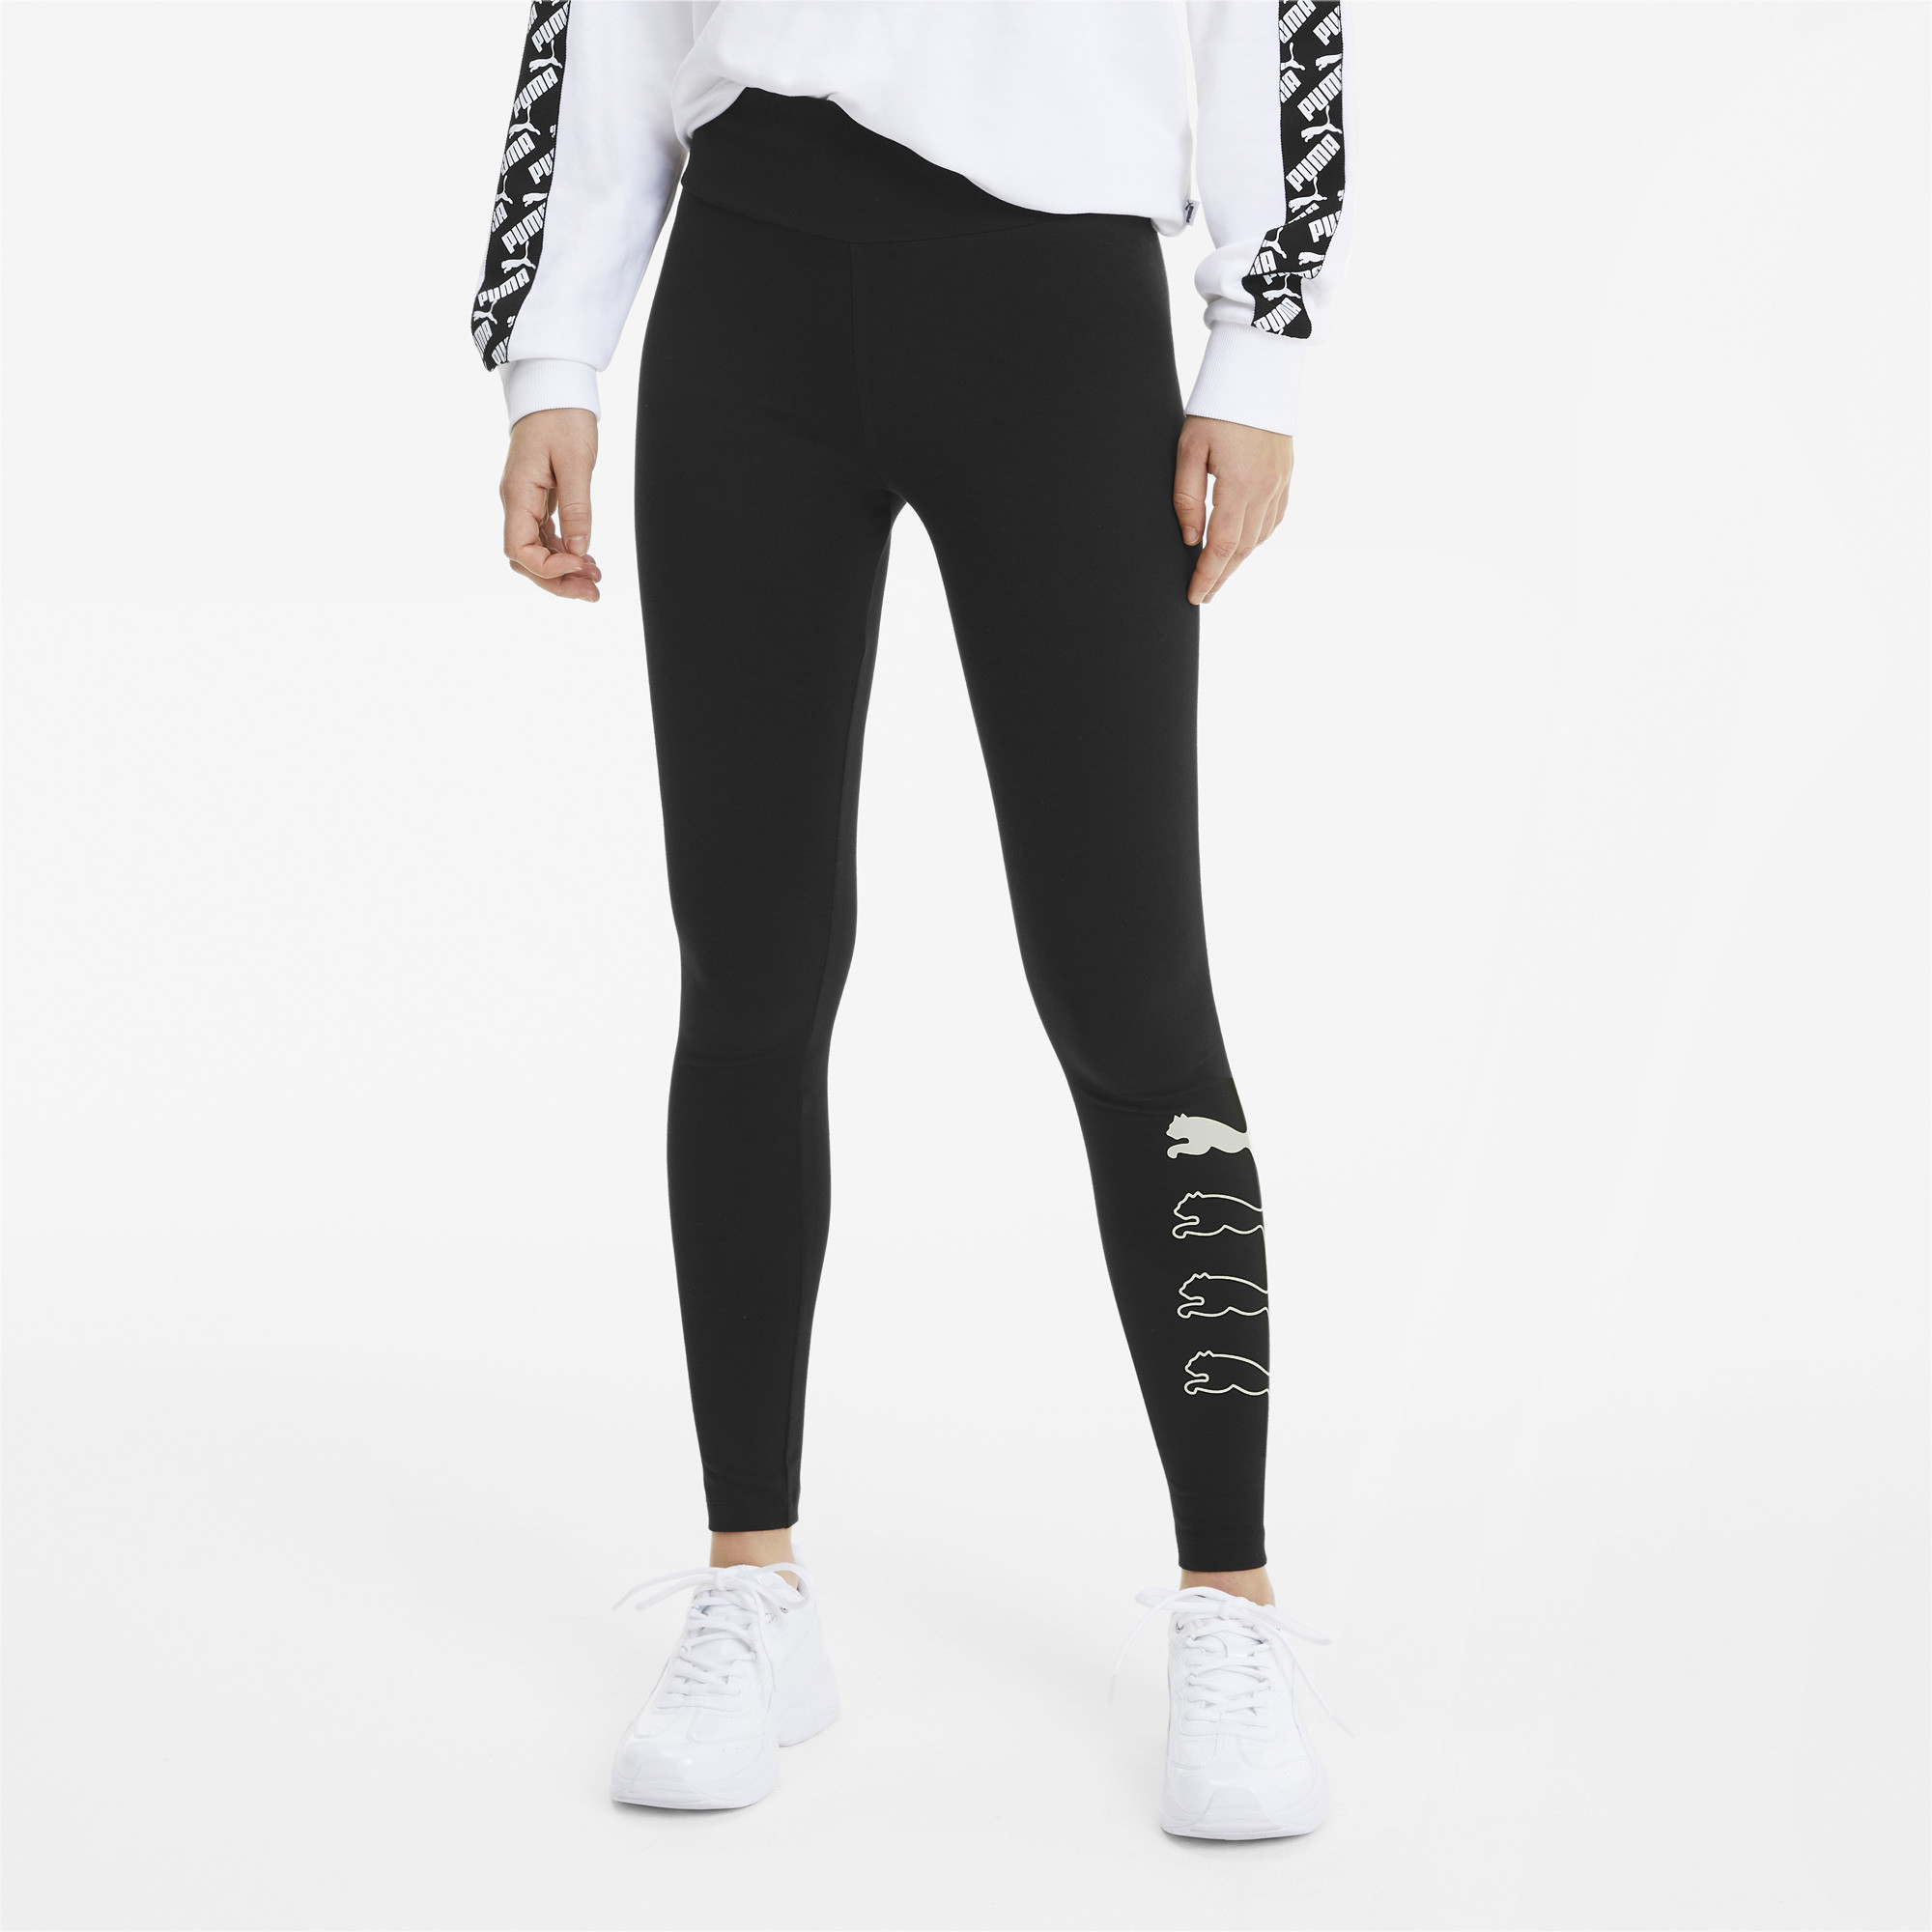 PUMA-Rebel-Women-039-s-Leggings-Women-Basics thumbnail 9